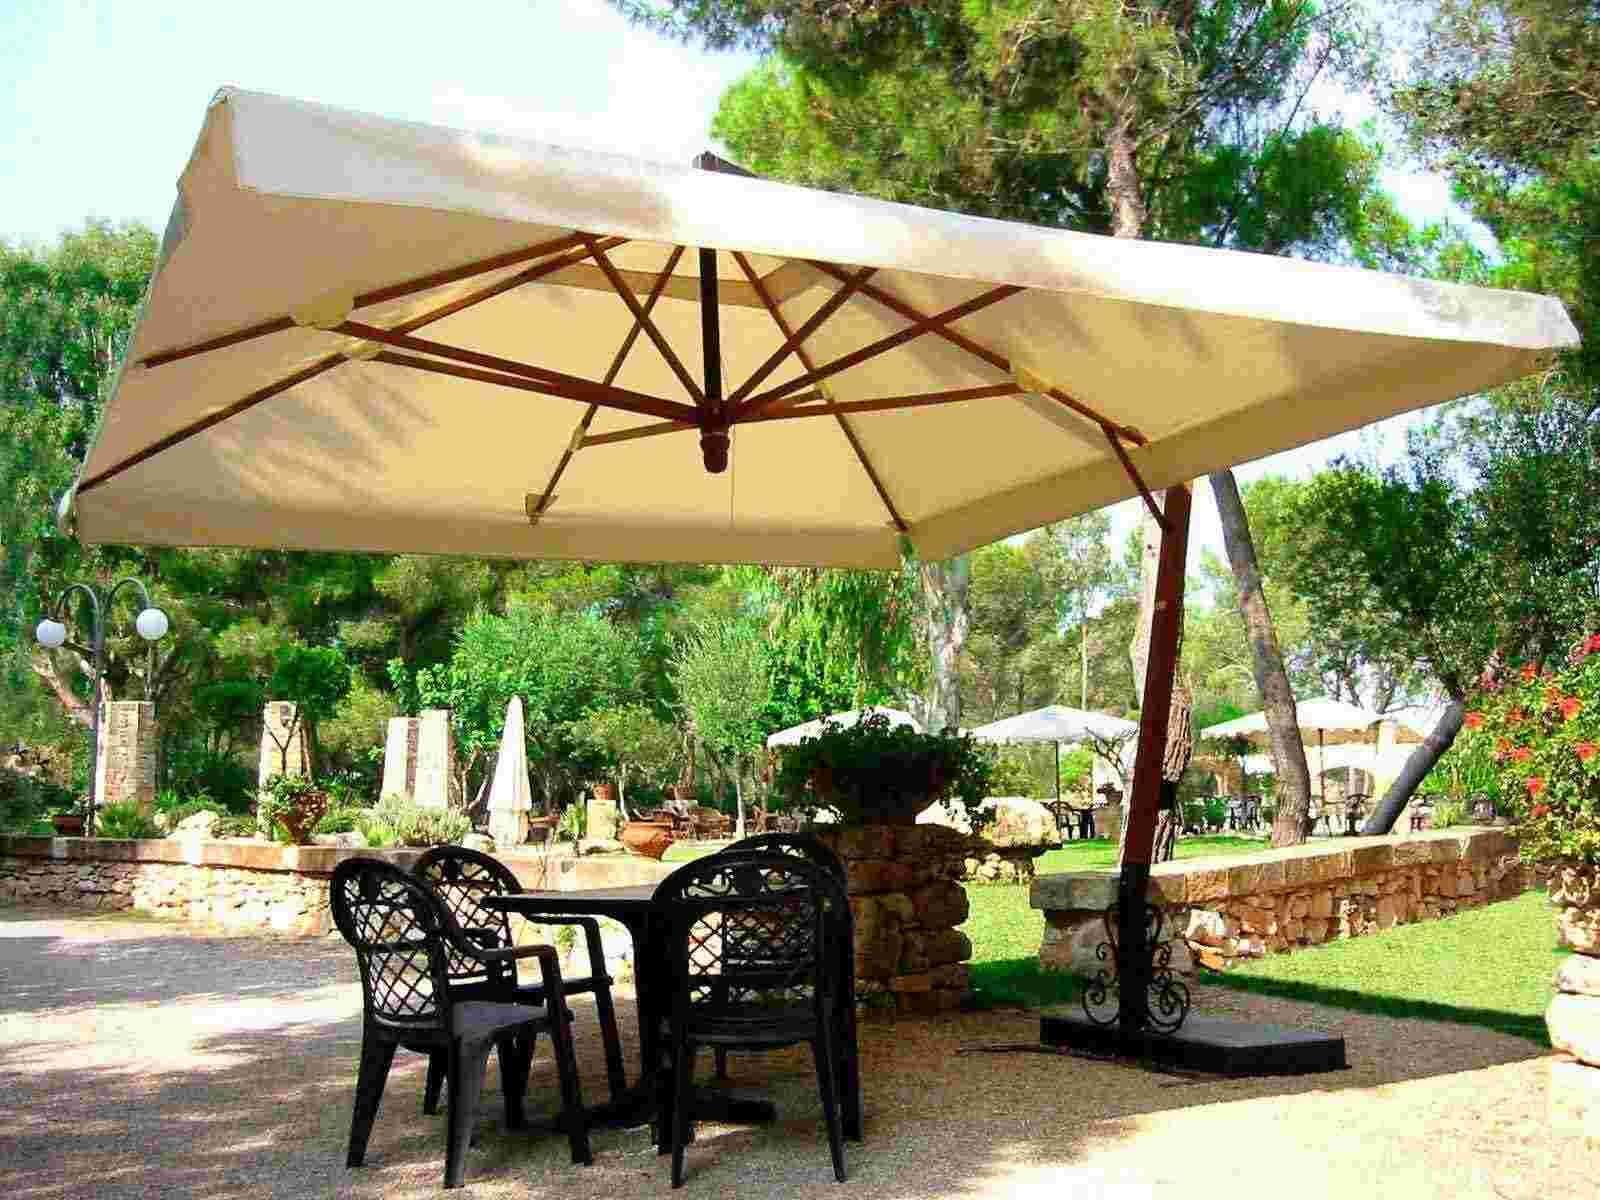 HOW TO GUIDE ON PATIO UMBRELLA REPLACEMENT CANOPY